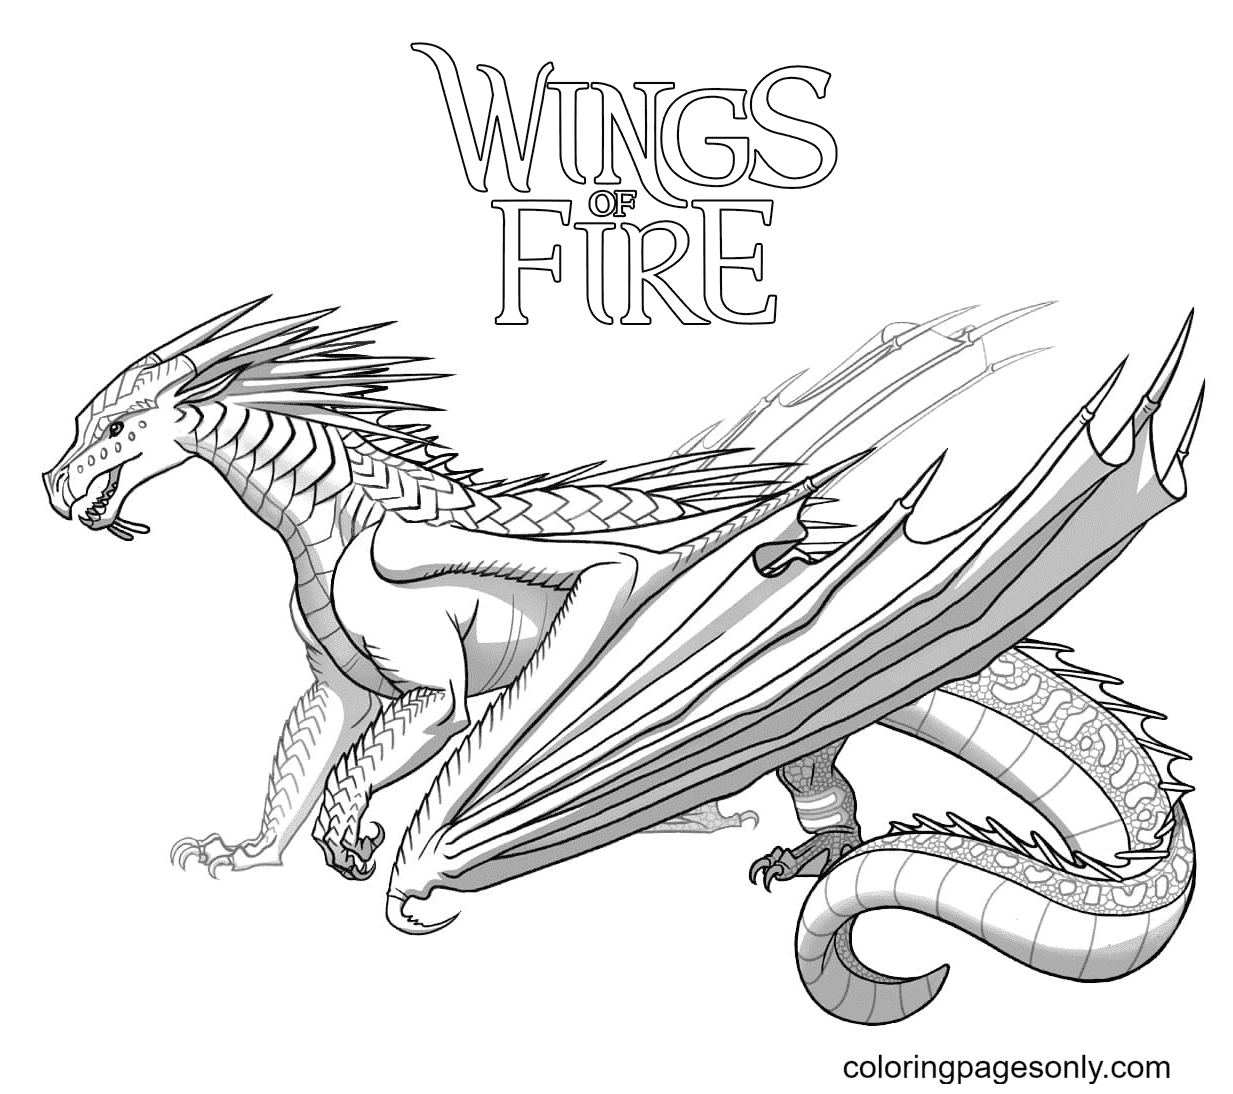 Dragon Wings of Fire Coloring Page